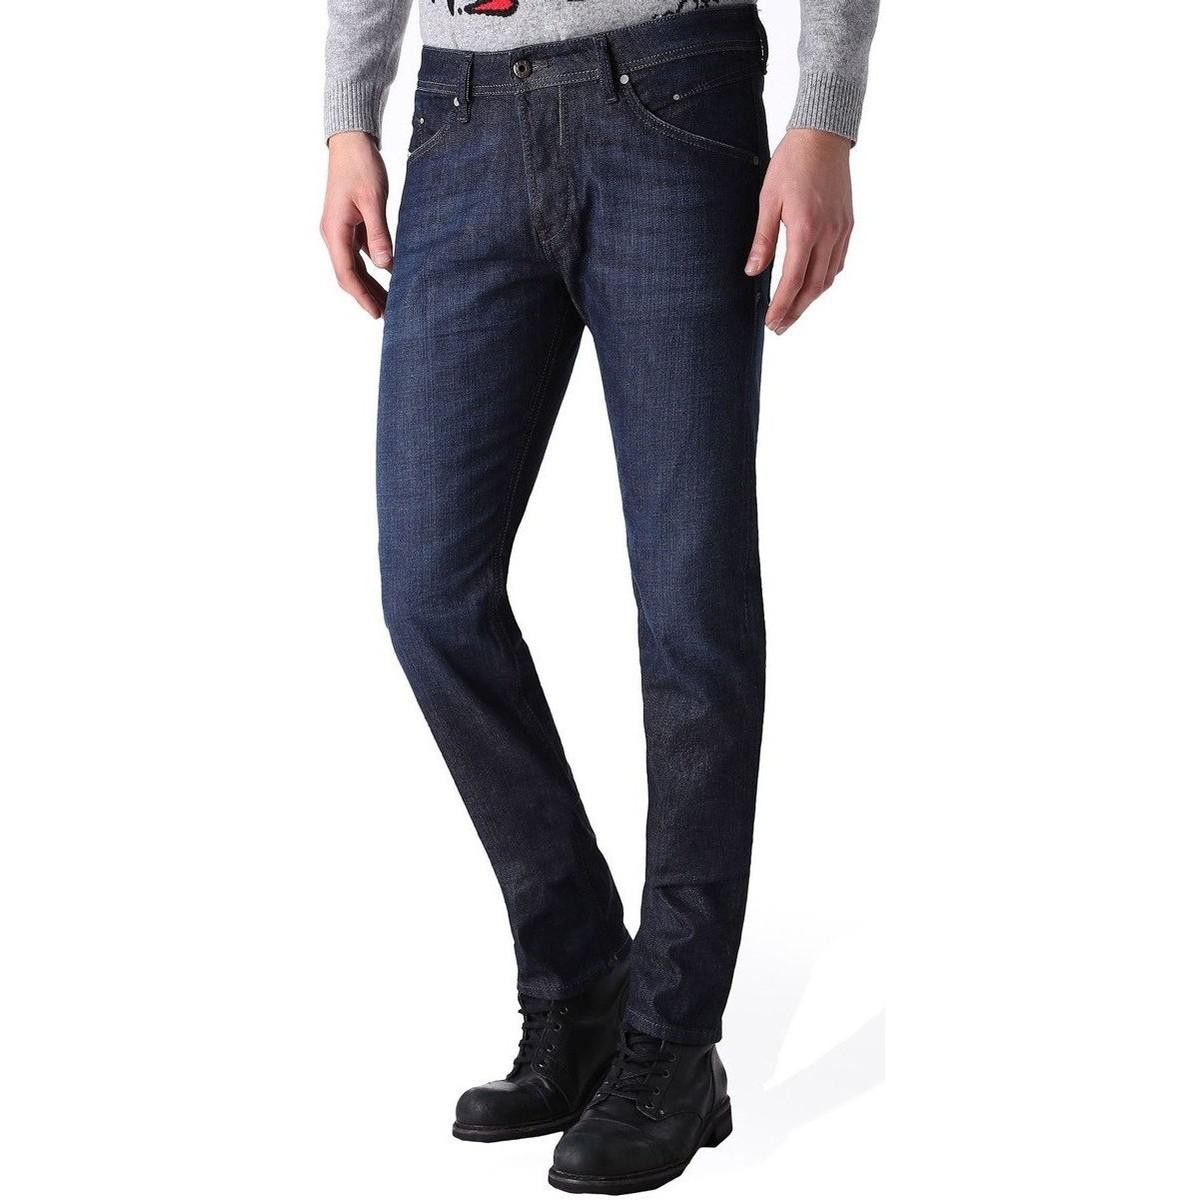 3ac55f5e Diesel Jeans Belther 0844c Mens Slim Tapered Fit Denim Jeans Women's ...